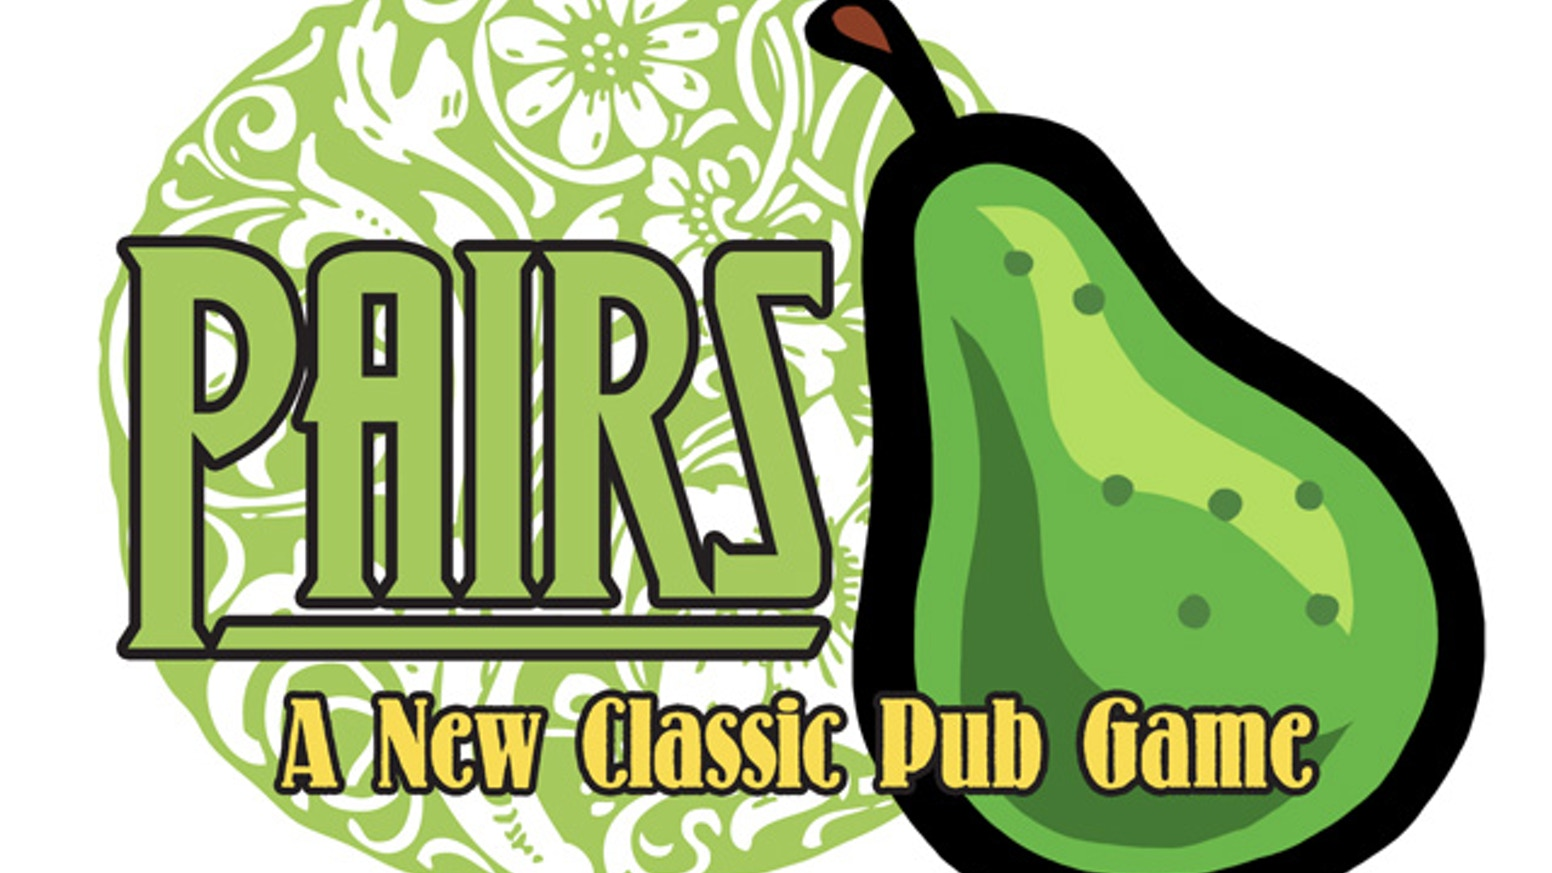 Pairs is a fast and easy card game by James Ernest, with many versions of art and rules, including four decks based on the works of Patrick Rothfuss.